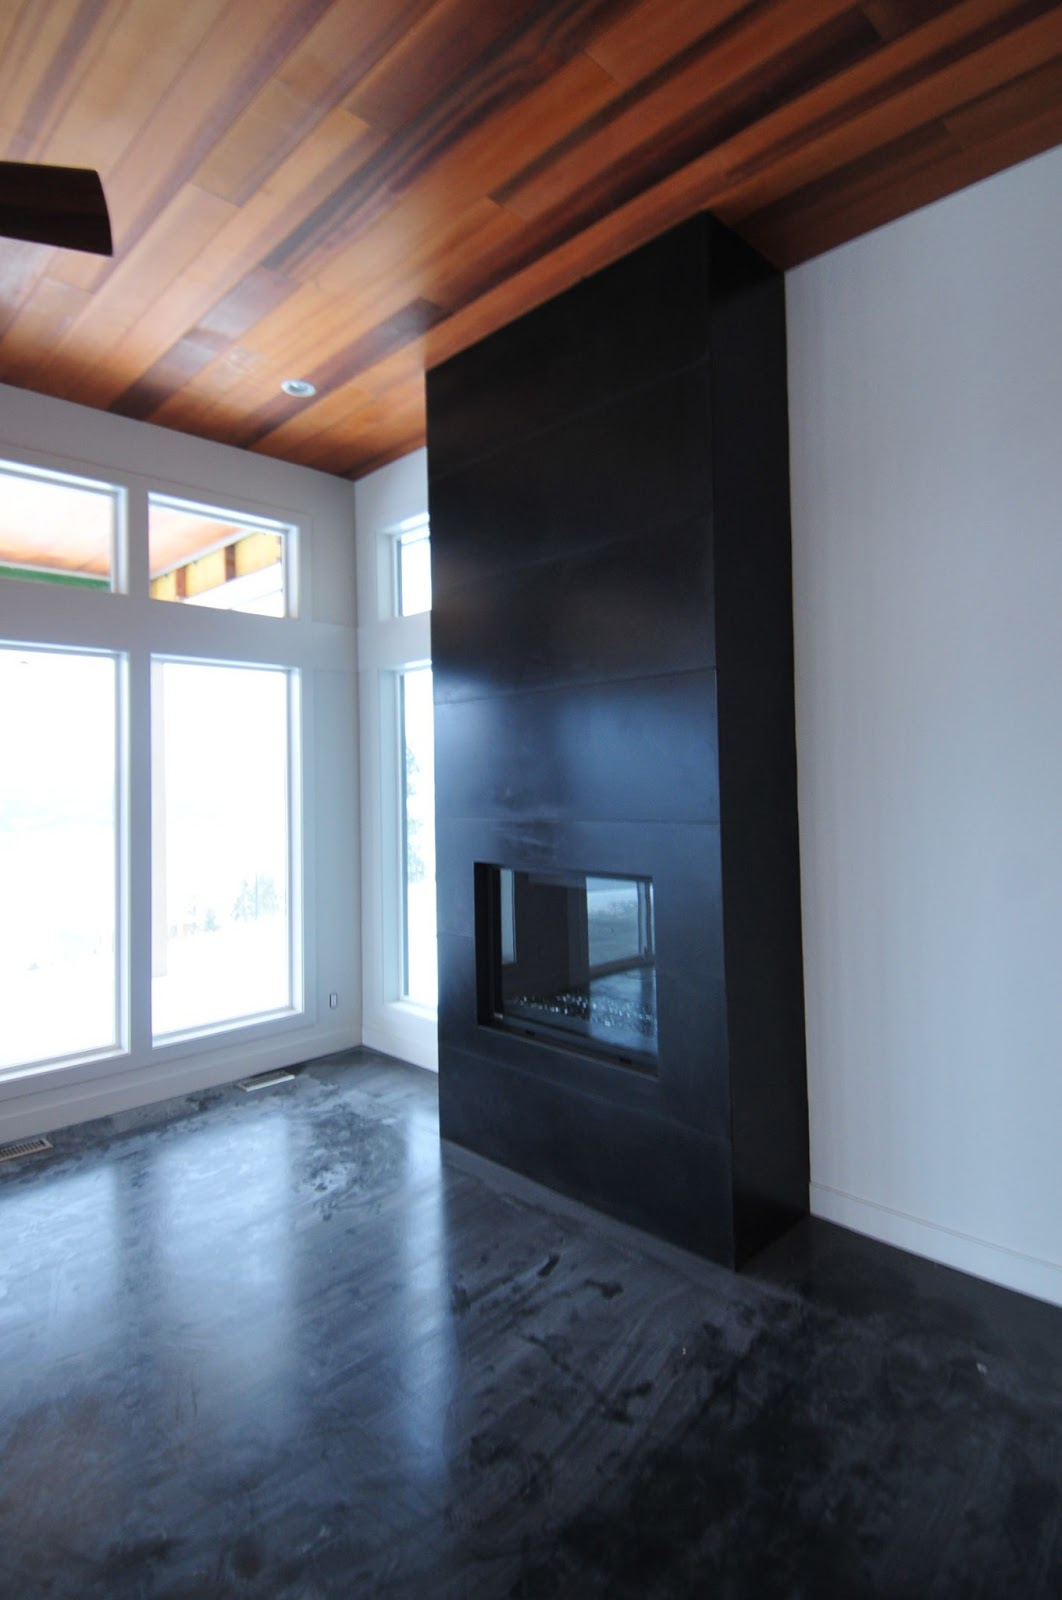 Mode Concrete Create A Major Design Impact Contemporary Floor To Ceiling Black Concrete Tiled Fireplace